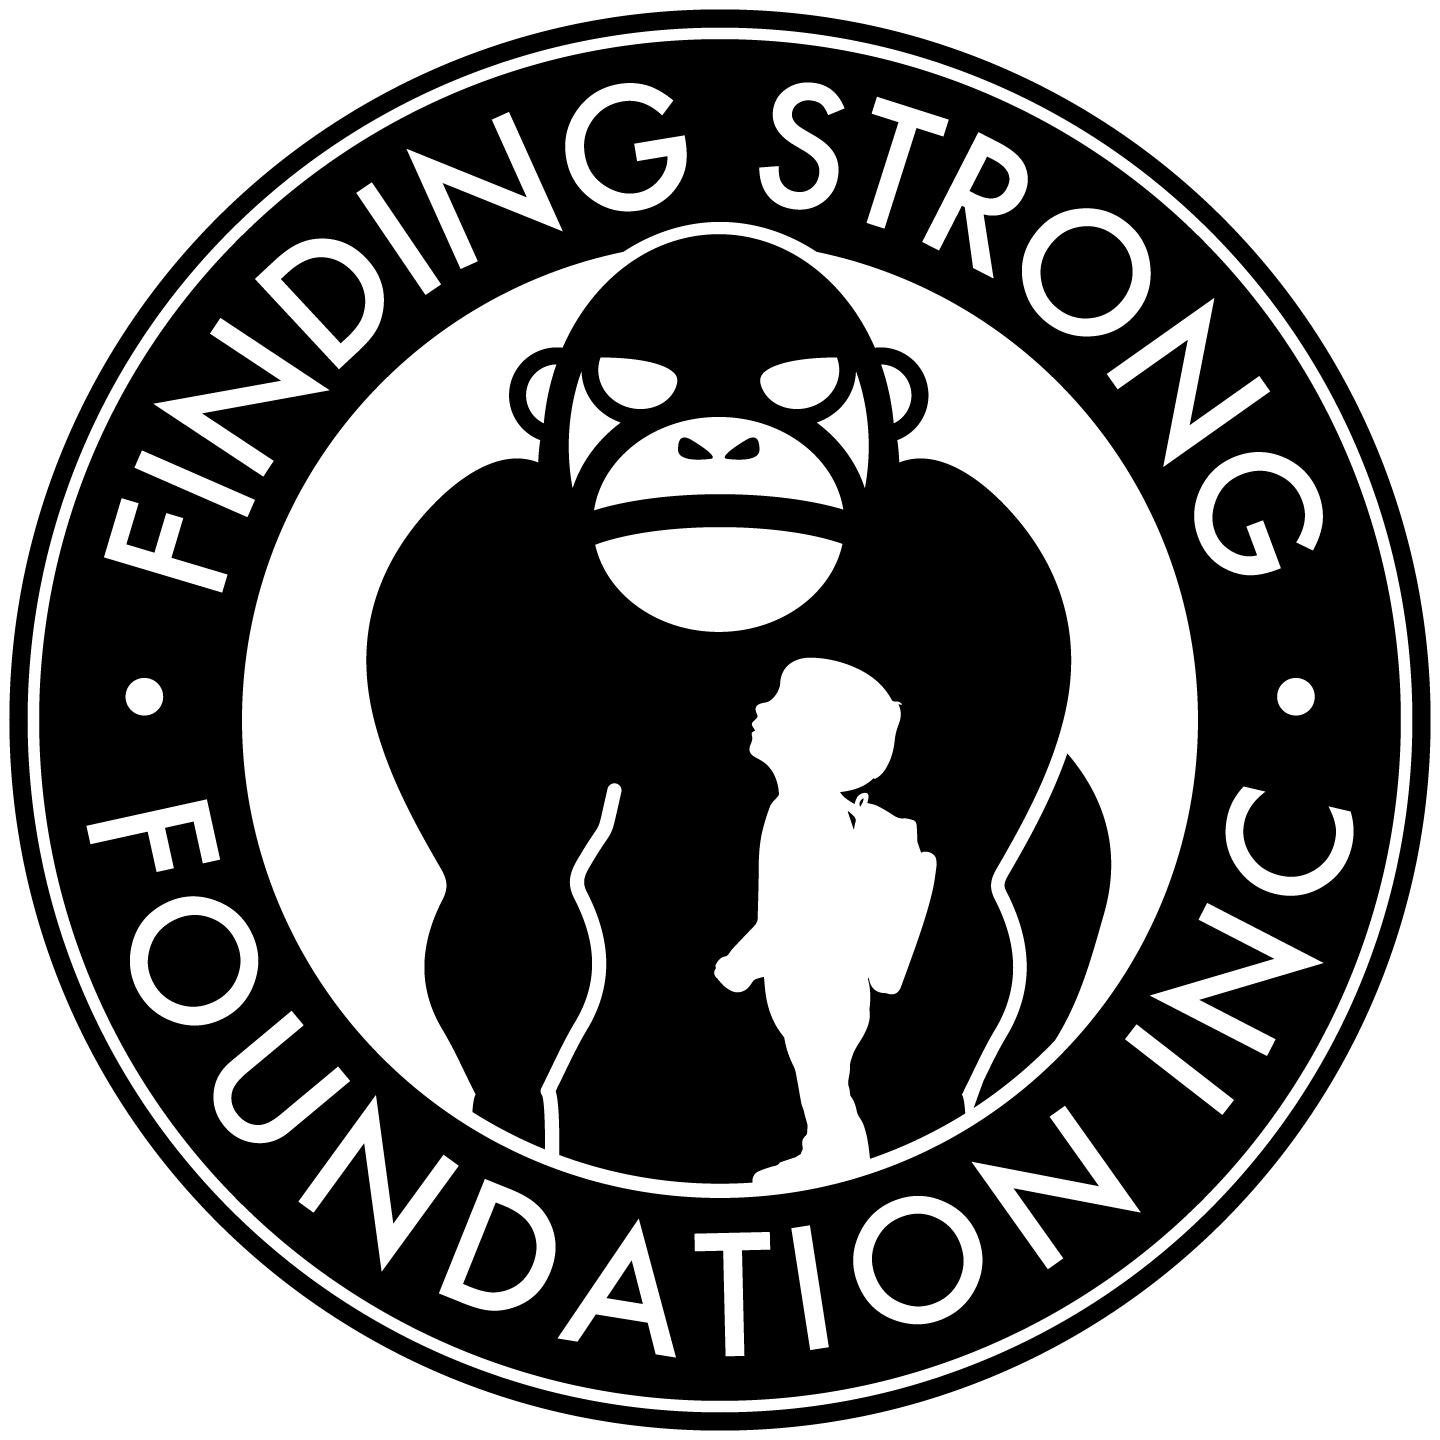 Finding Strong Foundation -